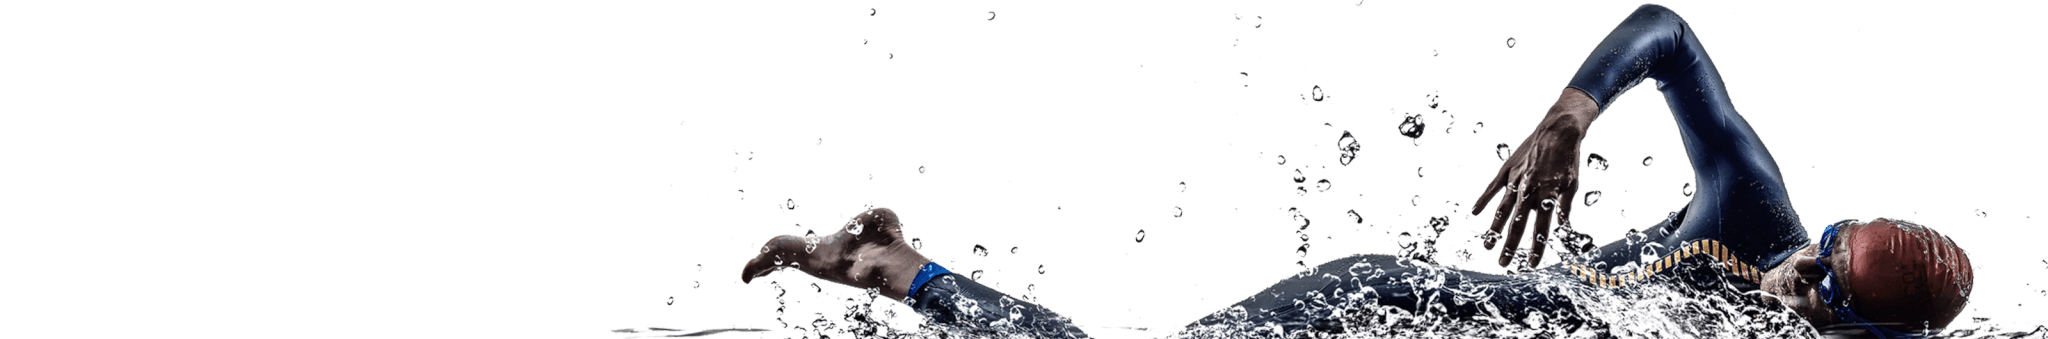 https://www.guiscards.it/wp-content/uploads/2017/10/inner_swimmer.png